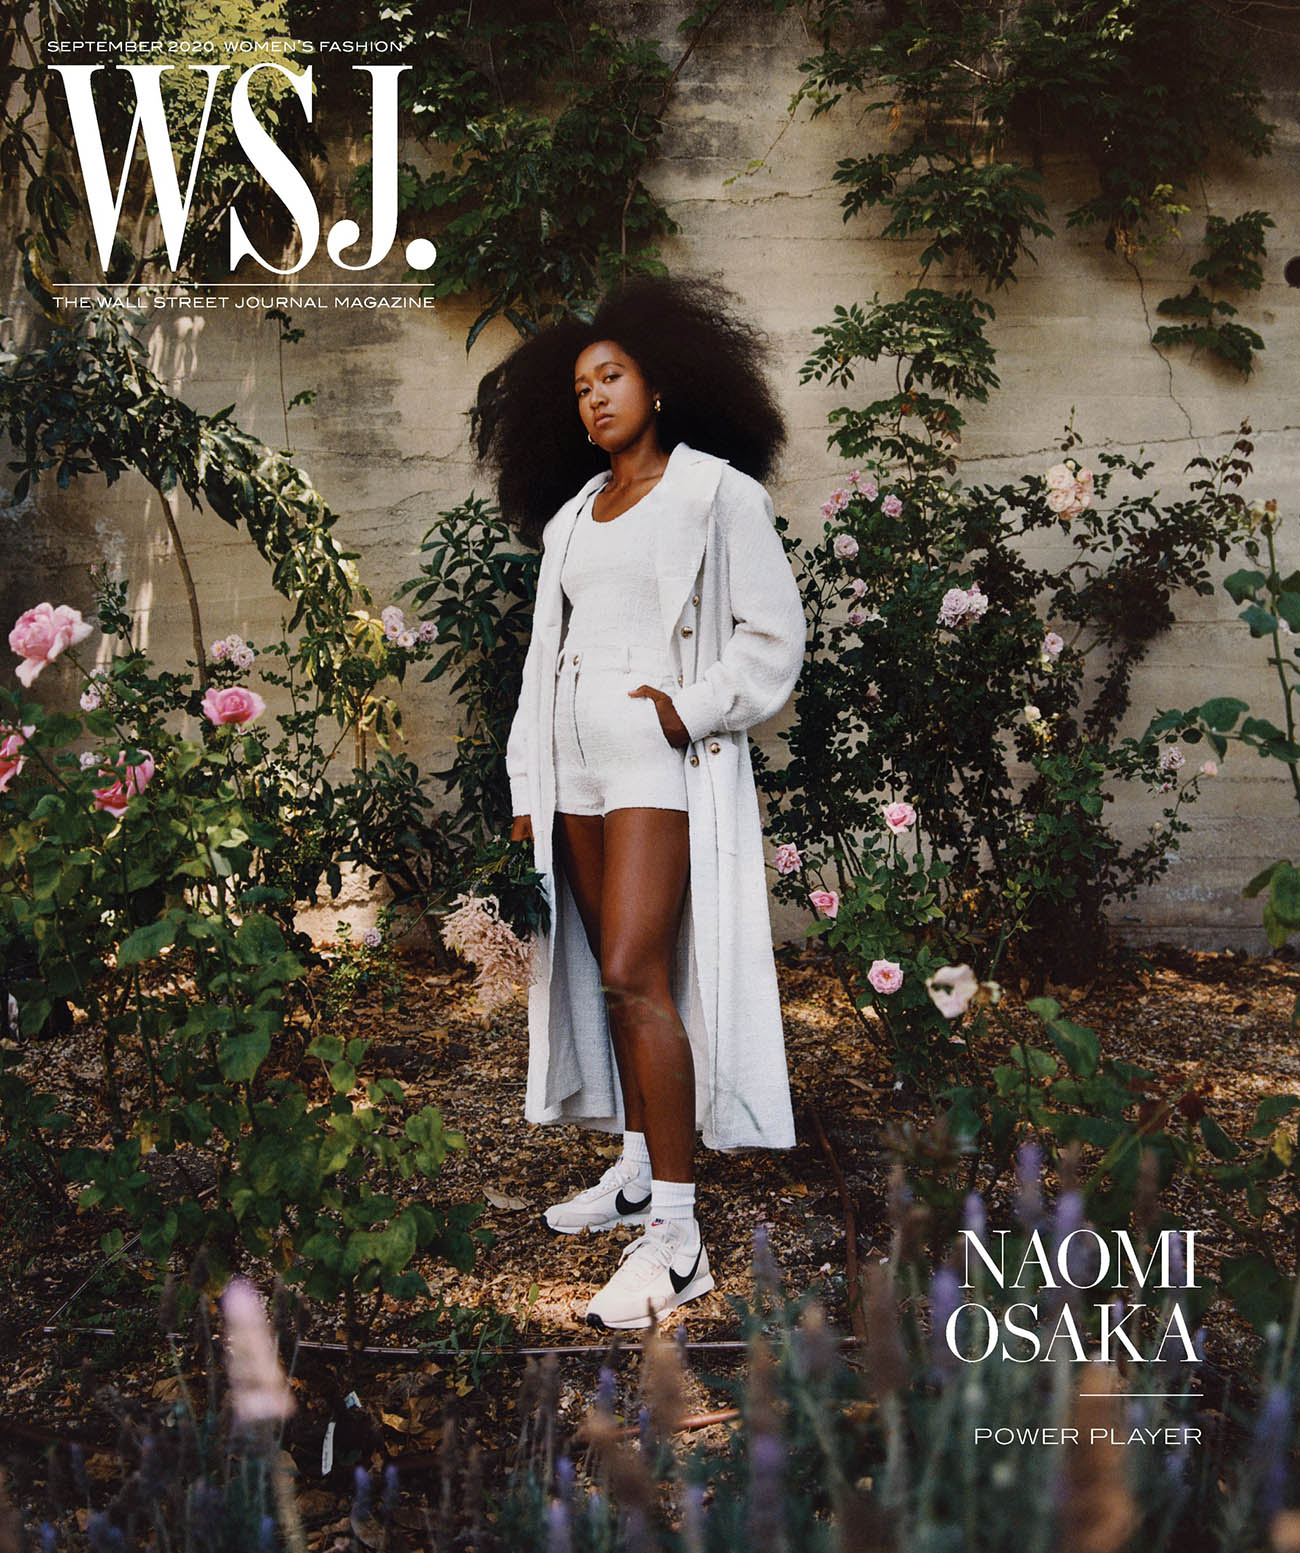 Naomi Osaka covers WSJ. Magazine September 2020 by Micaiah Carter